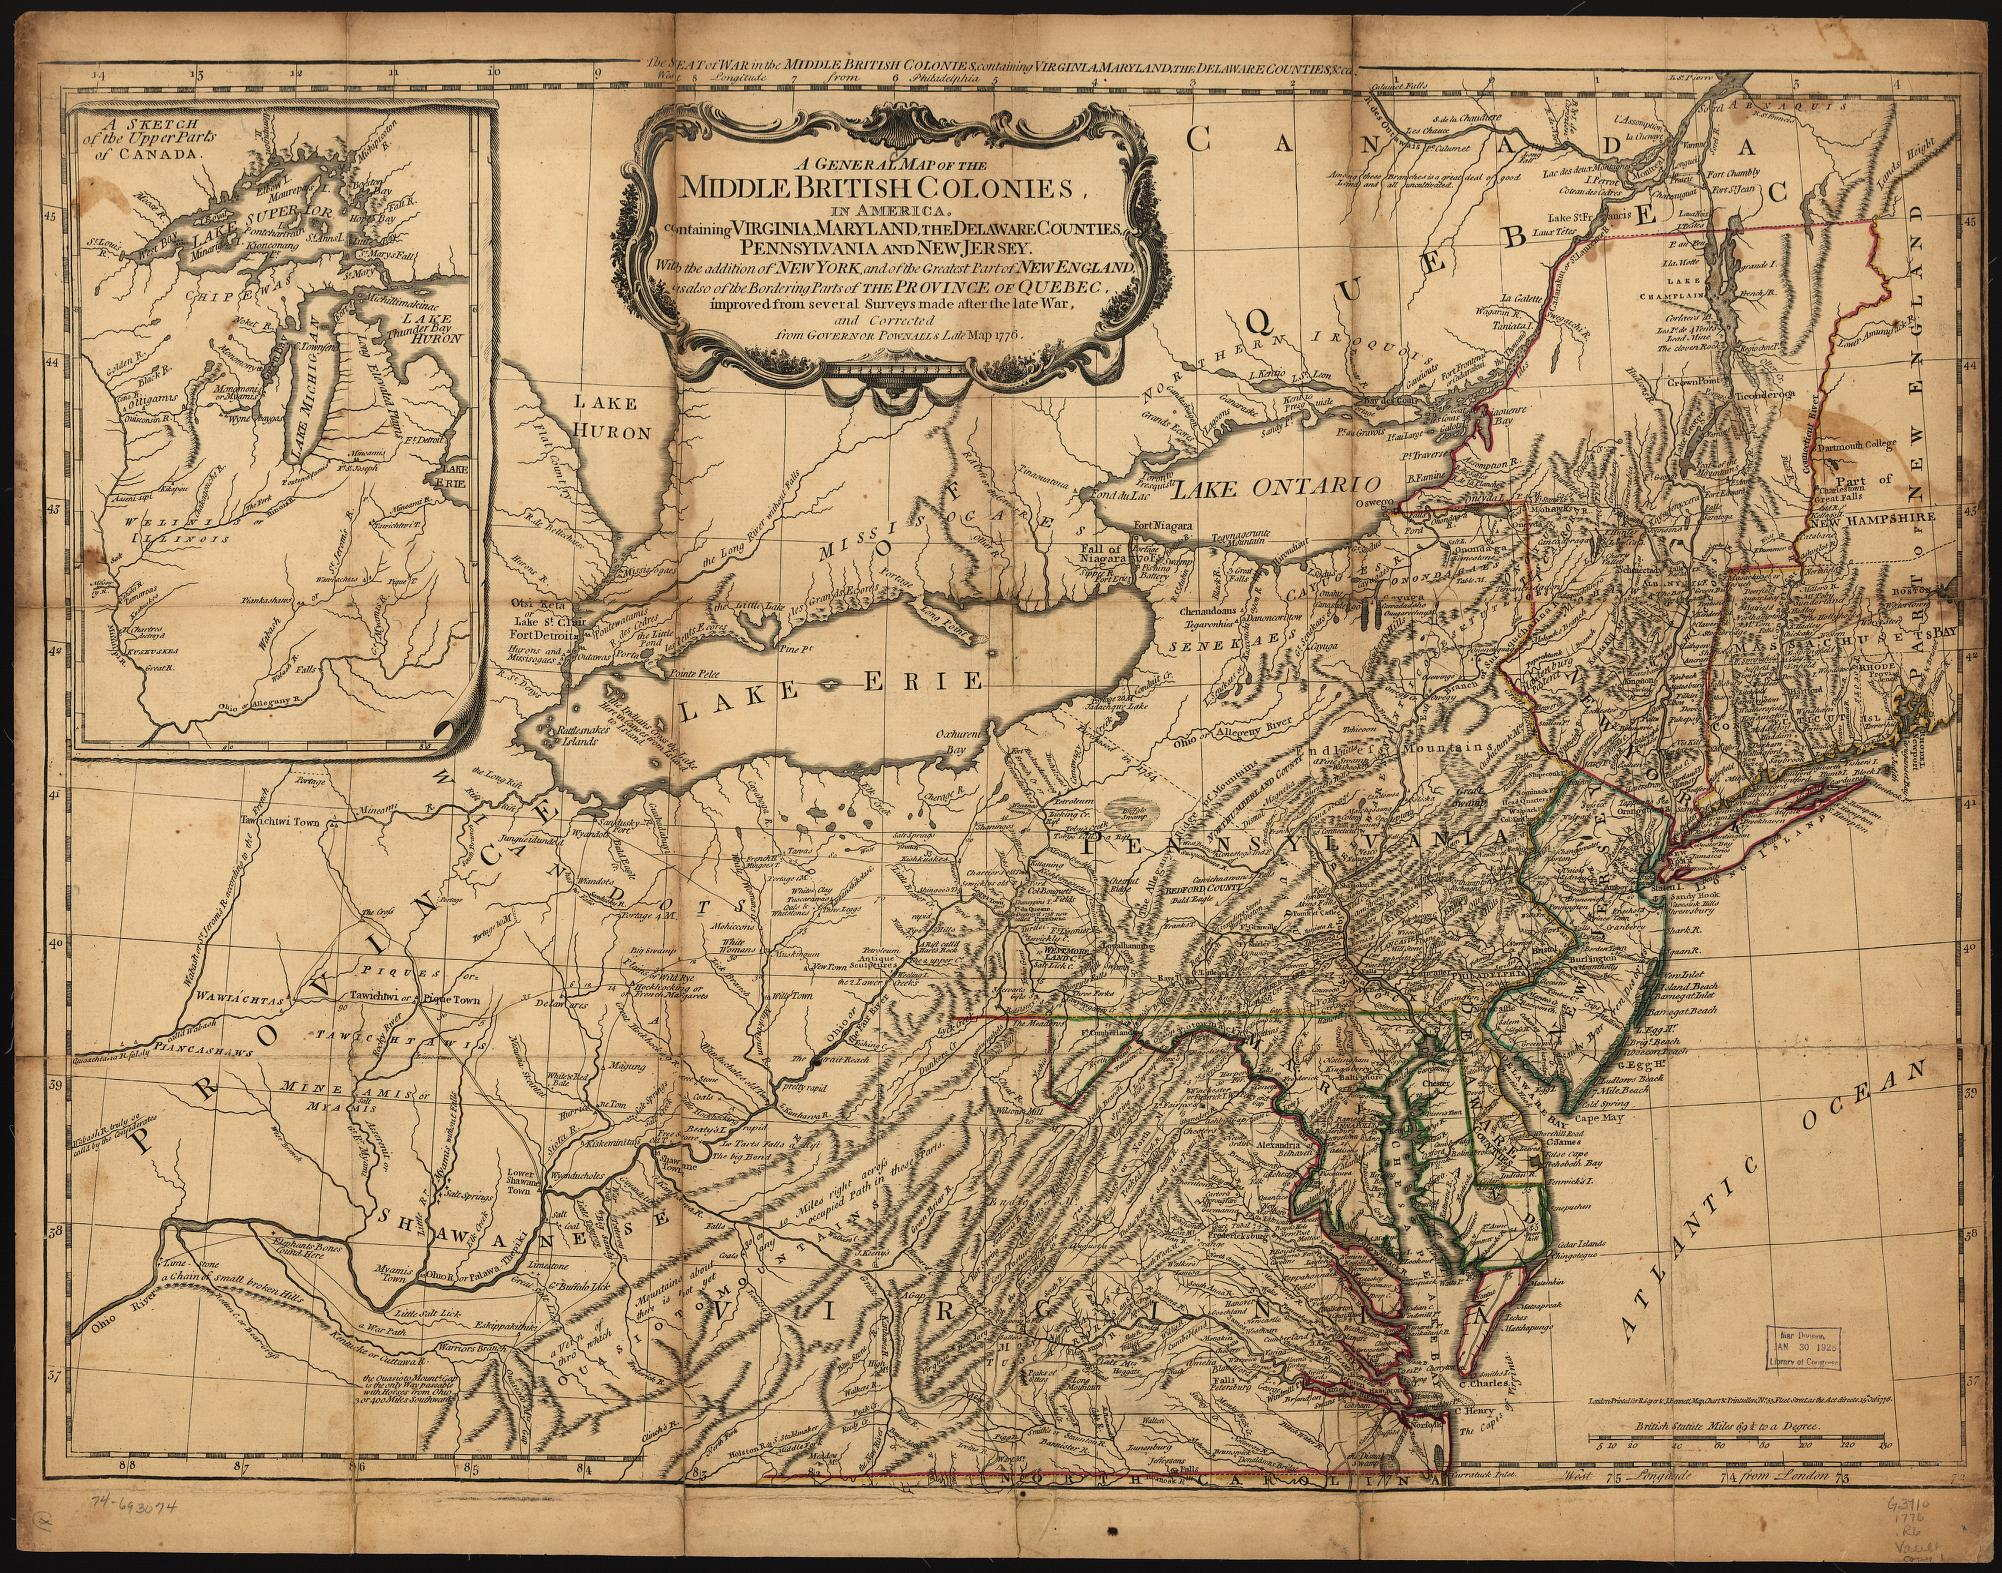 1775 to 1779 Pennsylvania Maps Map Of Original Colonies And Quebec on north carolina 13 colonies map, hudson river 13 colonies map, connecticut 13 colonies map, appalachian mountains 13 colonies map, french canada 13 colonies map, white mountains 13 colonies map, new england 13 colonies map, adirondack mountains 13 colonies map, territories 13 colonies map, delaware 13 colonies map, rhode island 13 colonies map,